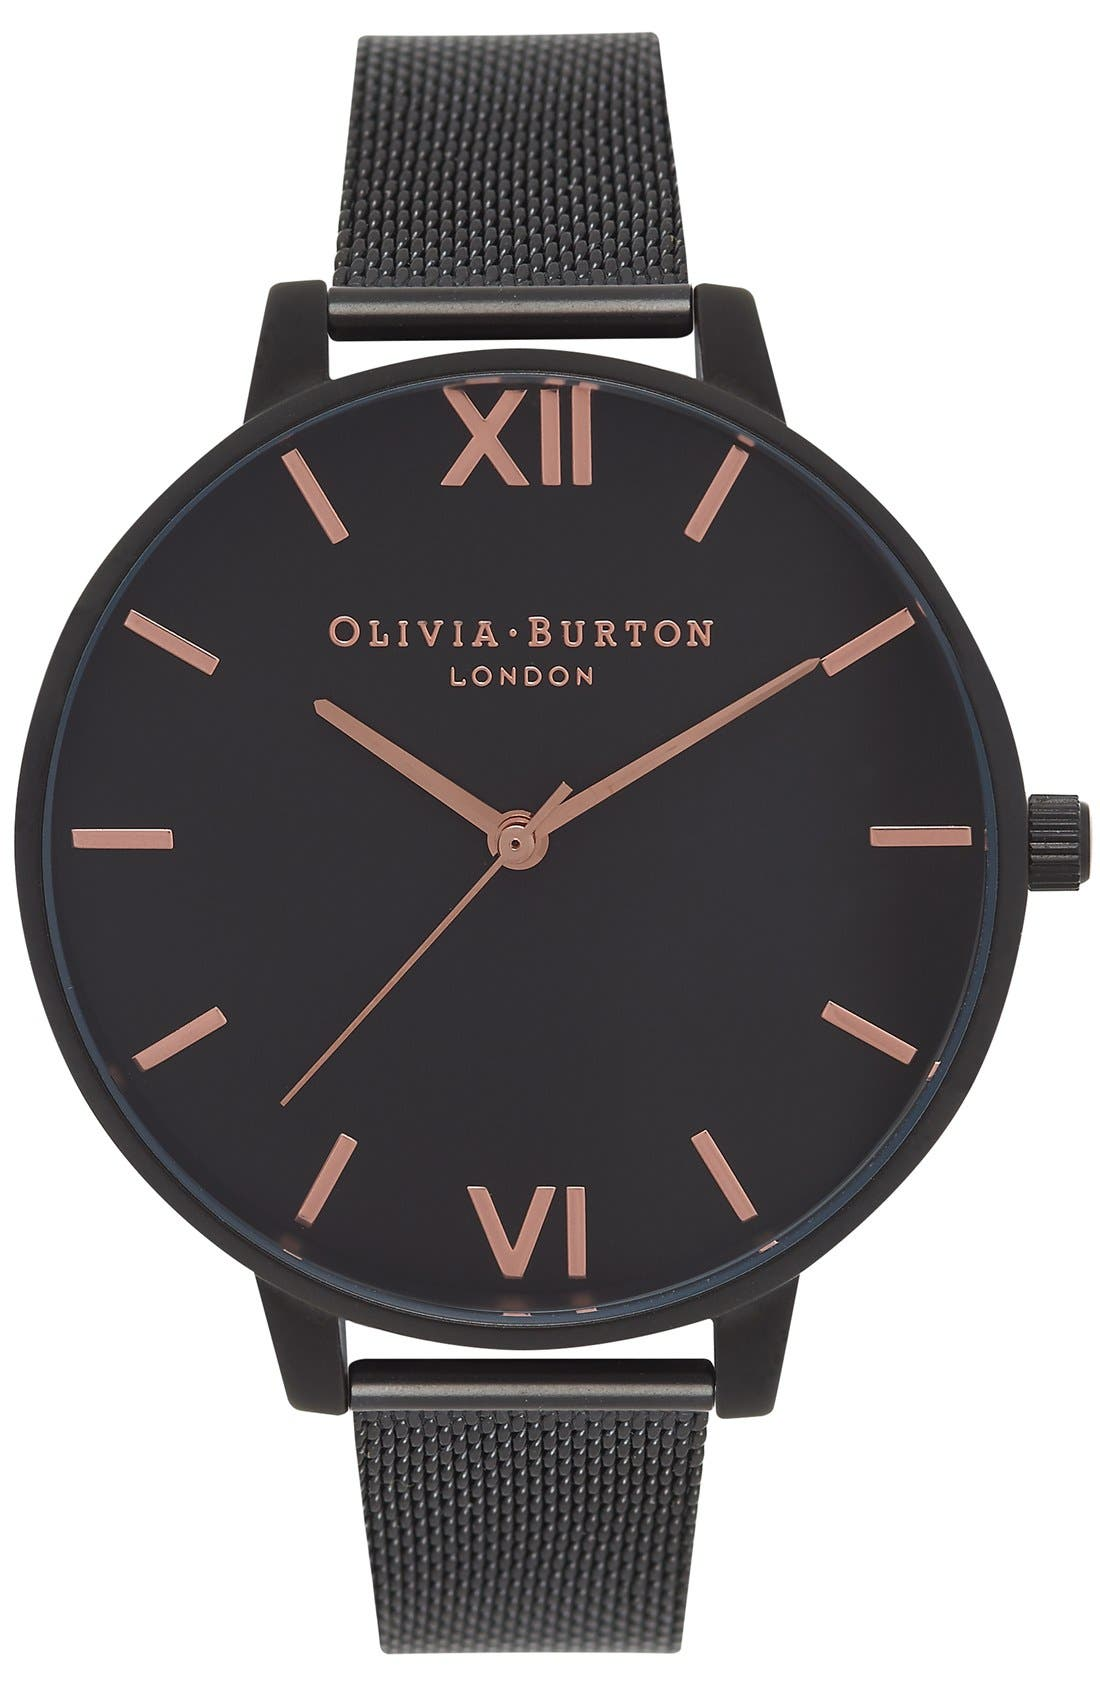 OLIVIA BURTON 'Big Dial' Mesh Strap Watch, 38mm, Main, color, 001